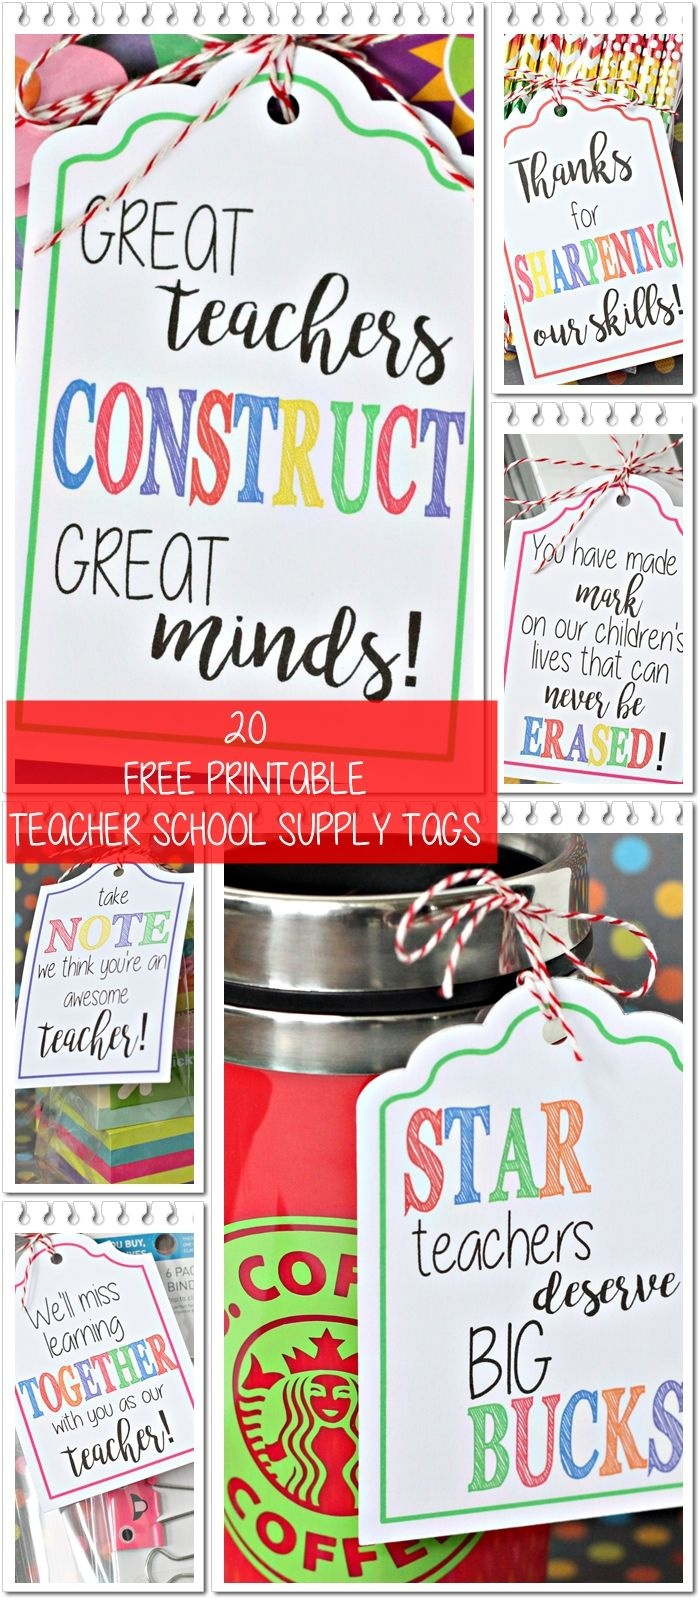 20 Free Printable Teacher School Supply Tags Perfect For End-Of-The - Take Note I Think You Are Awesome Free Printable